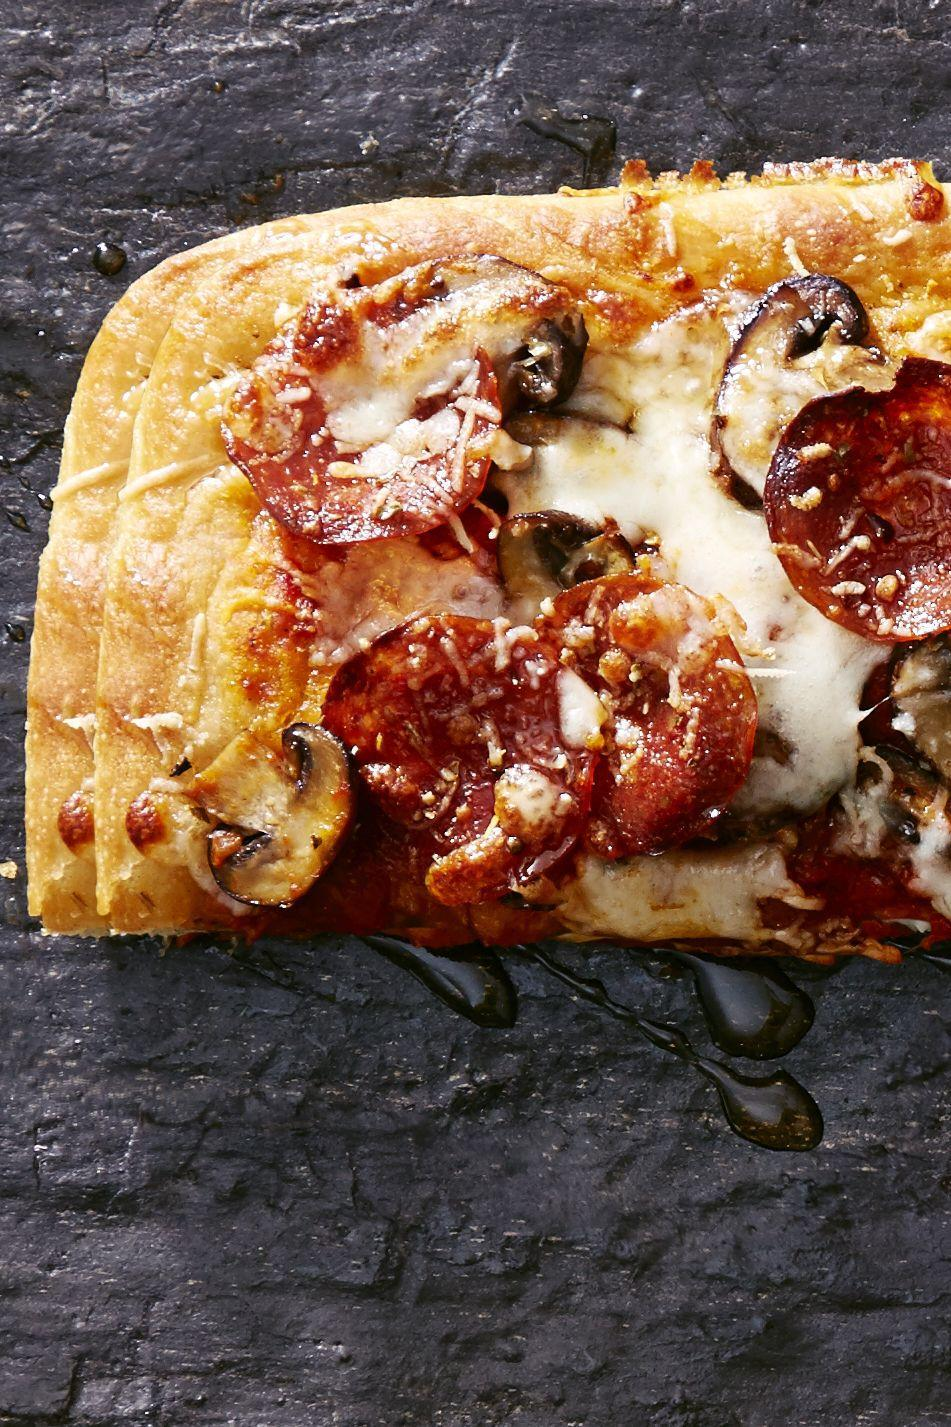 """<p>Chili flakes bring the heat, but a slight drizzle of honey brings a subtle sweetness that takes this pie up a notch.</p><p><a href=""""https://www.goodhousekeeping.com/food-recipes/party-ideas/a36233/sweet-and-spicy-pepperoni-mushroom-pizza/"""" rel=""""nofollow noopener"""" target=""""_blank"""" data-ylk=""""slk:Get the recipe for Sweet and Spicy Pepperoni-Mushroom Pizza »"""" class=""""link rapid-noclick-resp""""><em>Get the recipe for Sweet and Spicy Pepperoni-Mushroom Pizza »</em></a></p>"""